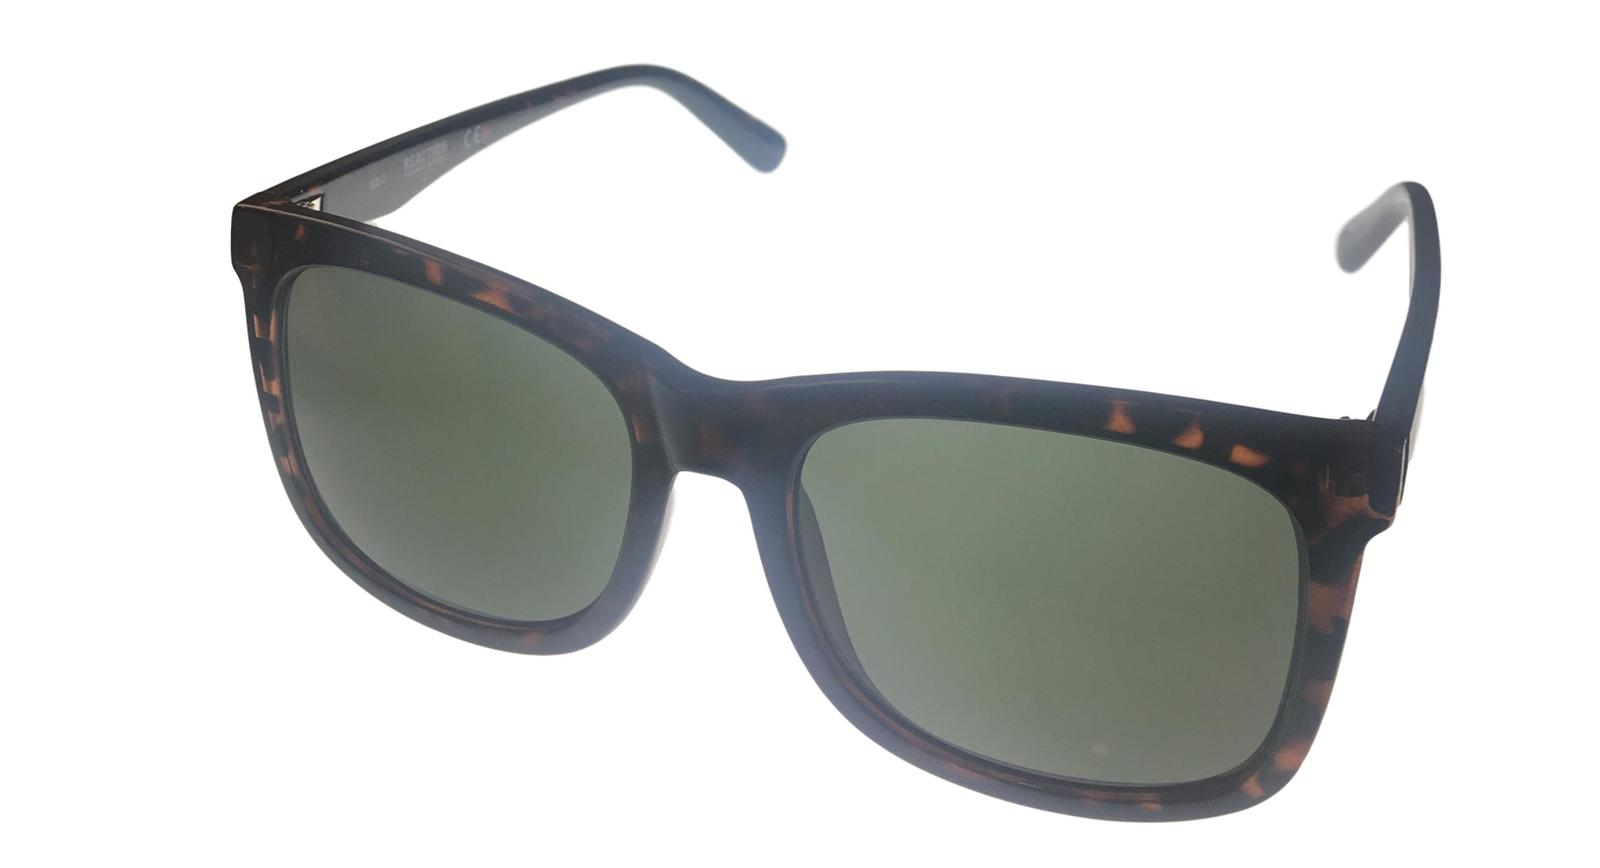 Kenneth Cole Reaction Mens Soft Square Shiny Tortoise Sunglass KC1324 52N image 1